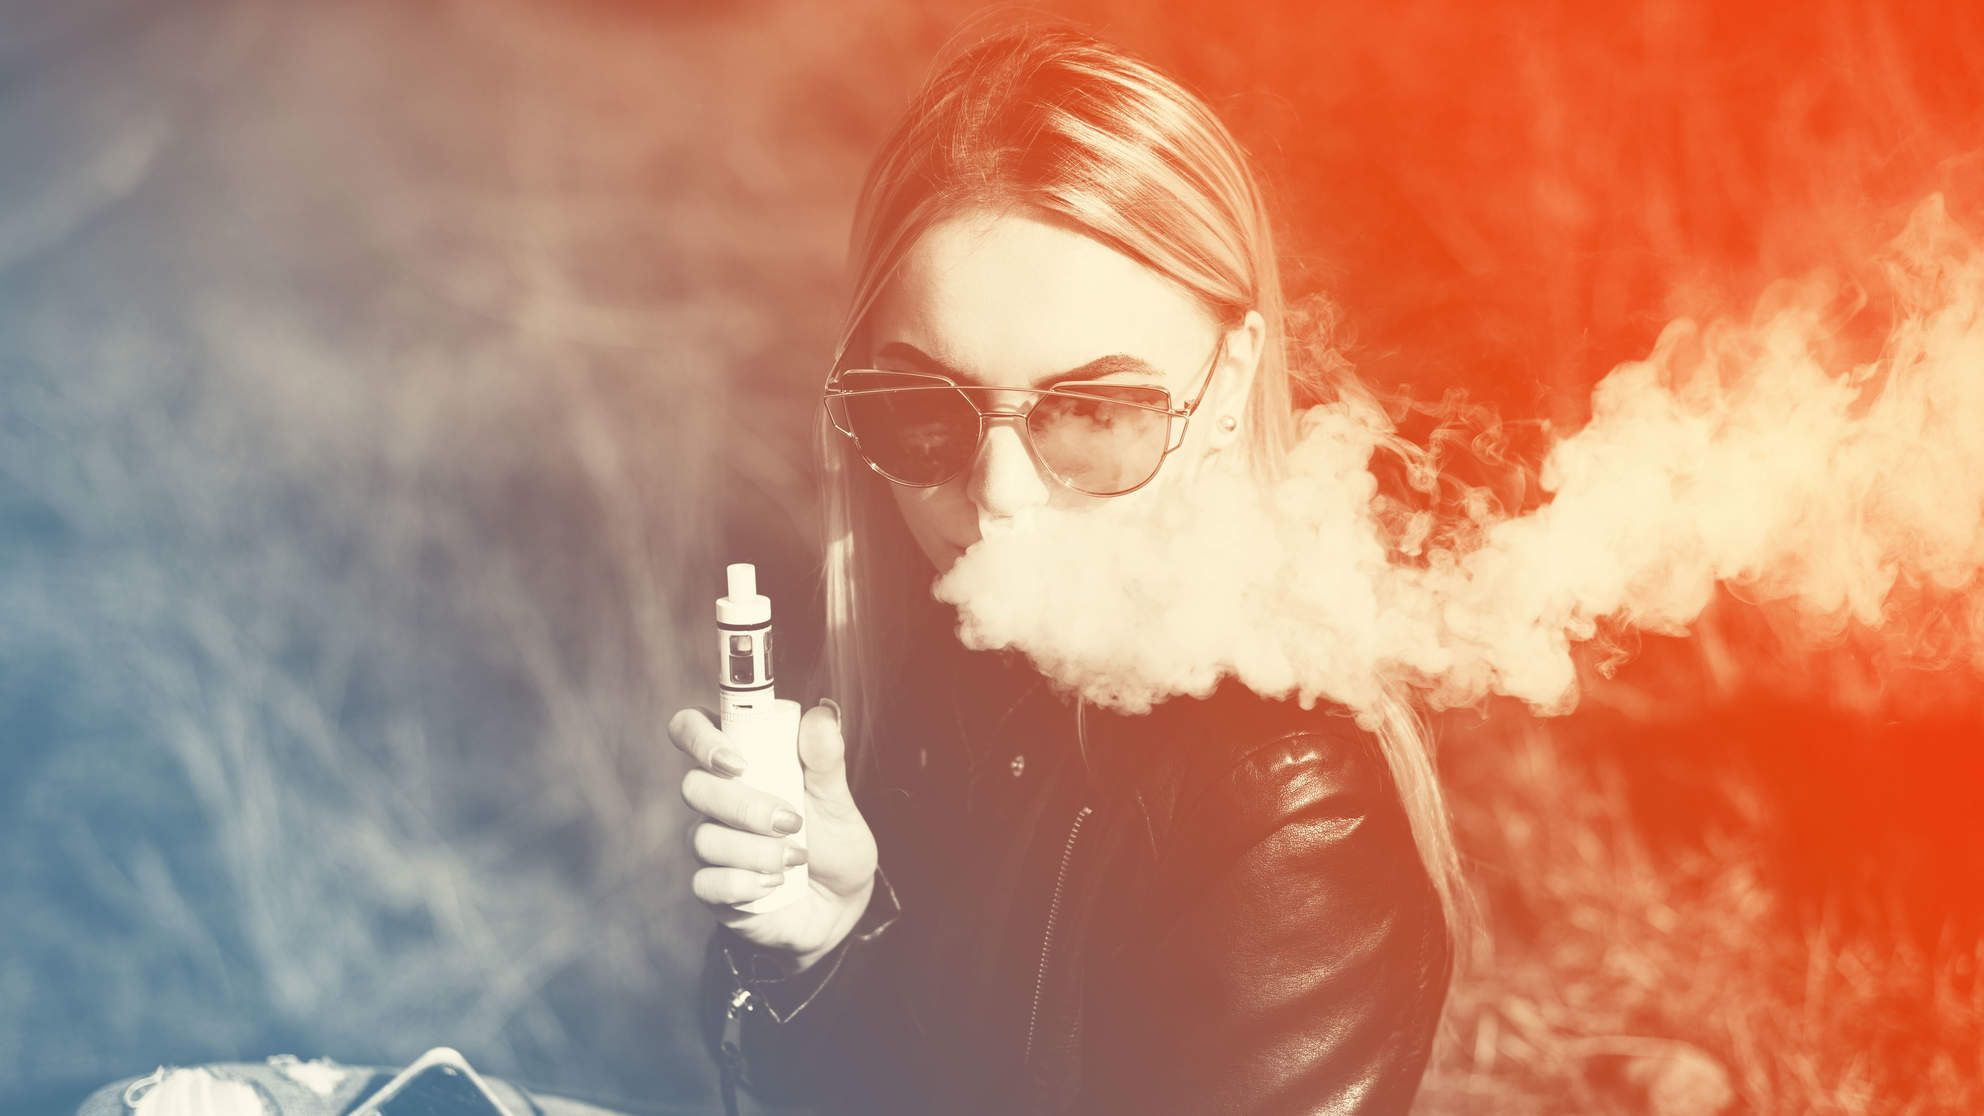 Turns Out Vaping Can Cause Yet Another Life Threatening Type Of Pneumonia Vape Pneumonia Health Department